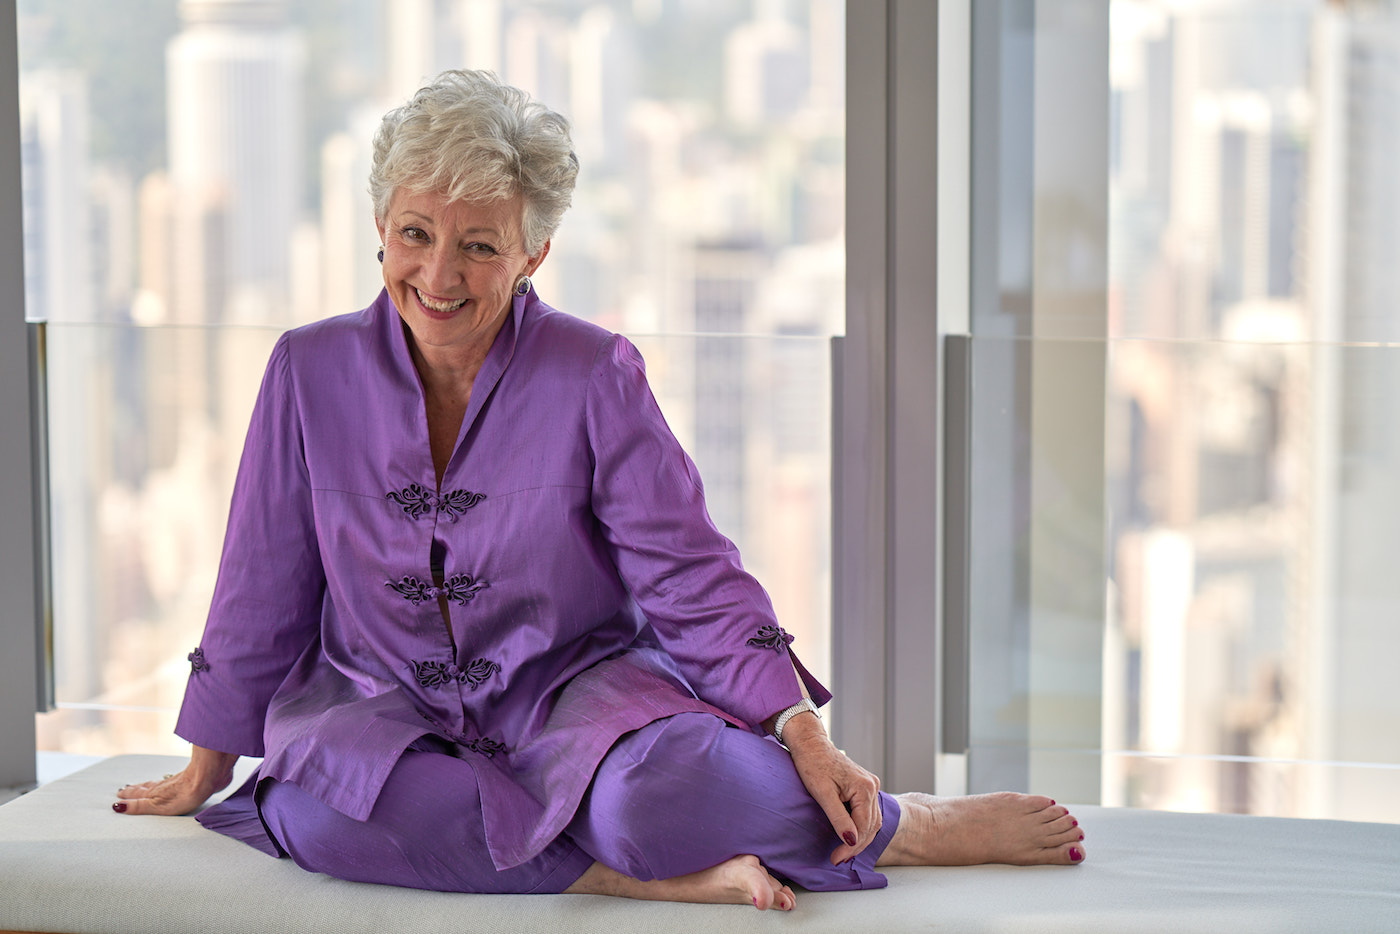 Brenda Scofield talks about ageing in Hong Kong and the magic power of human connection